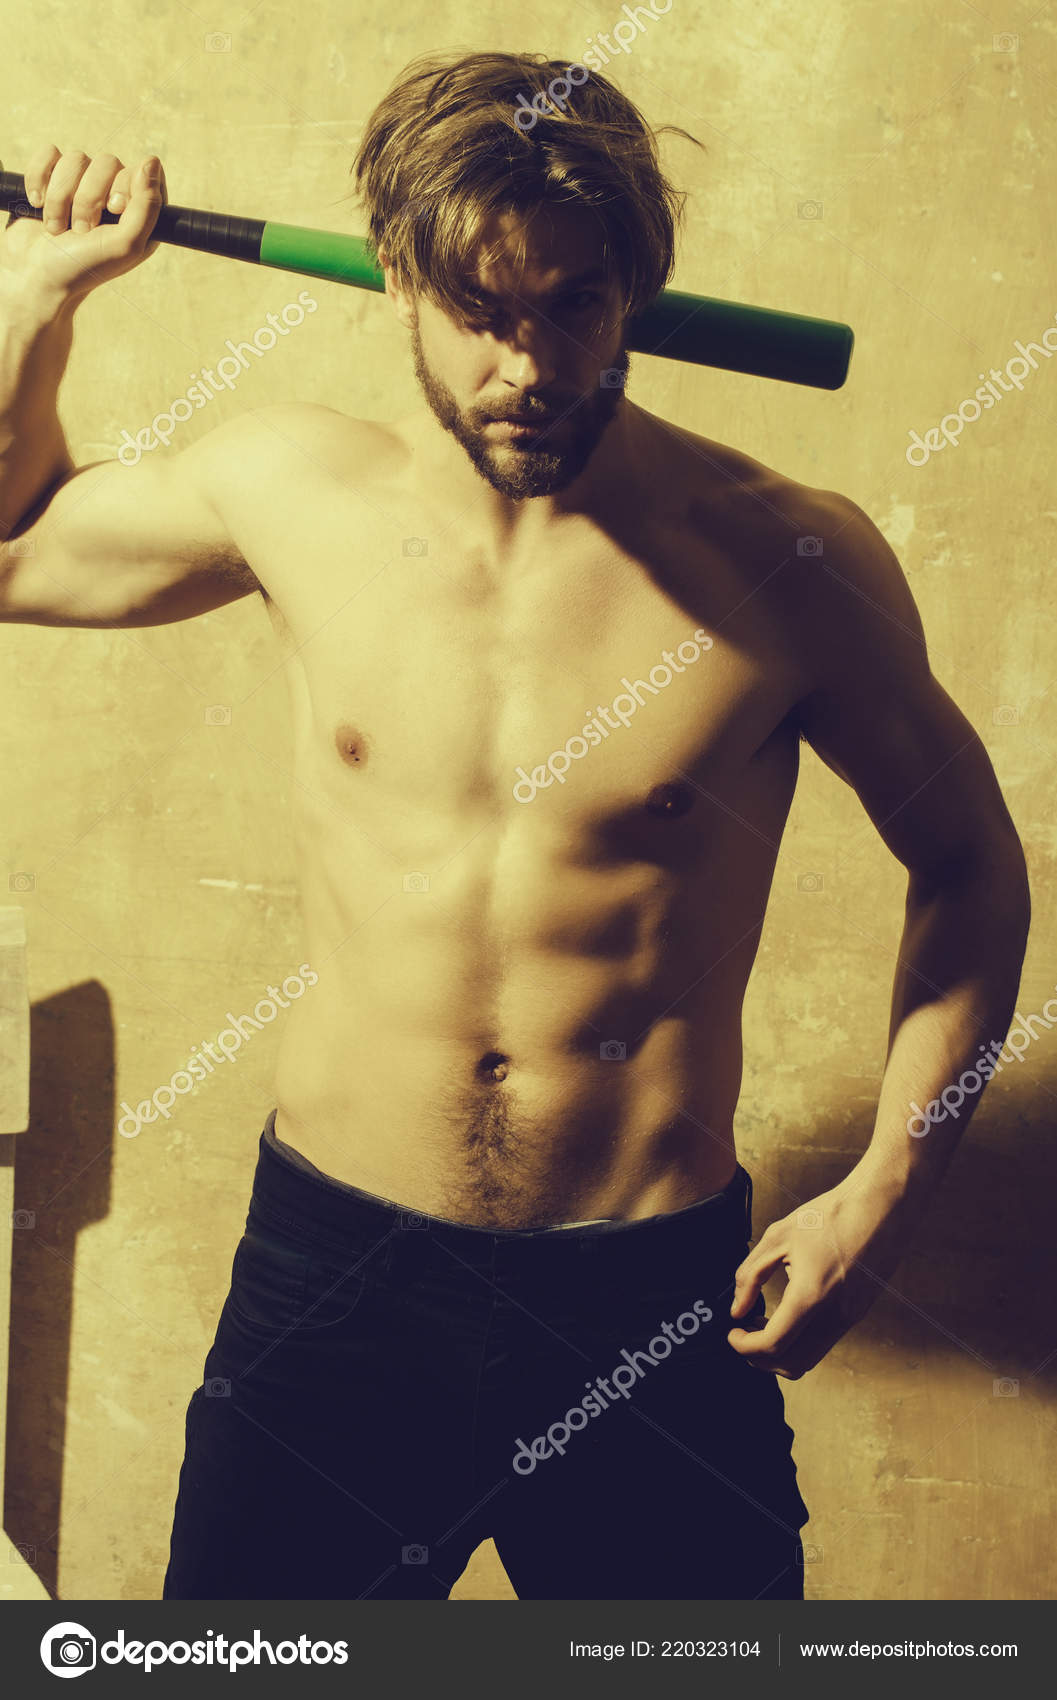 Athletic man with muscular torso standing with baseball bat– stock image